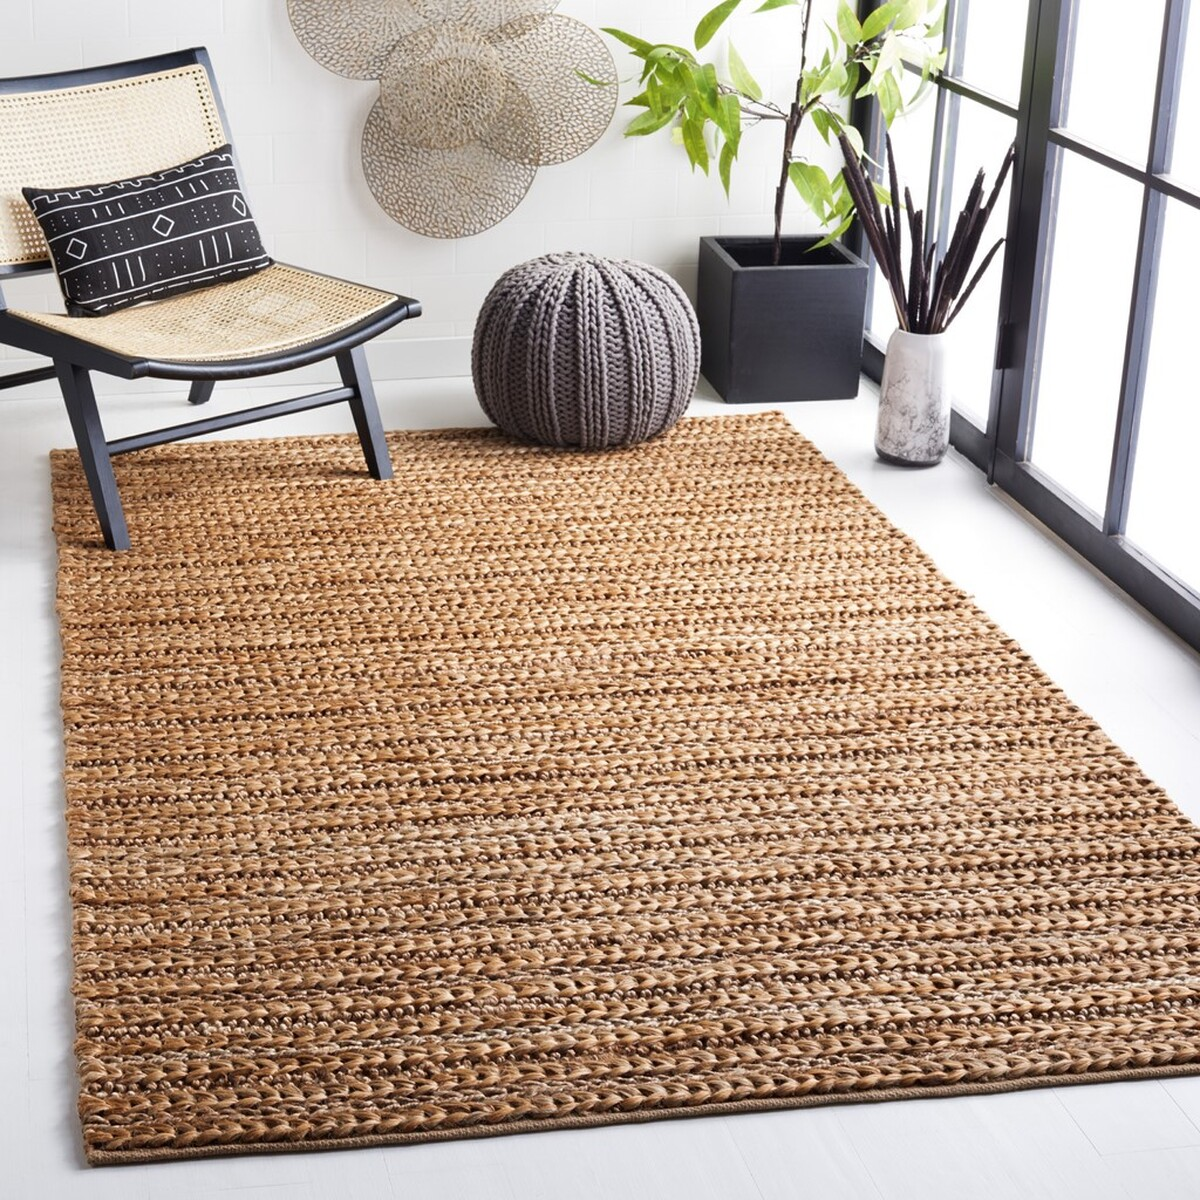 Rug Nf653a Natural Fiber Area Rugs By Safavieh